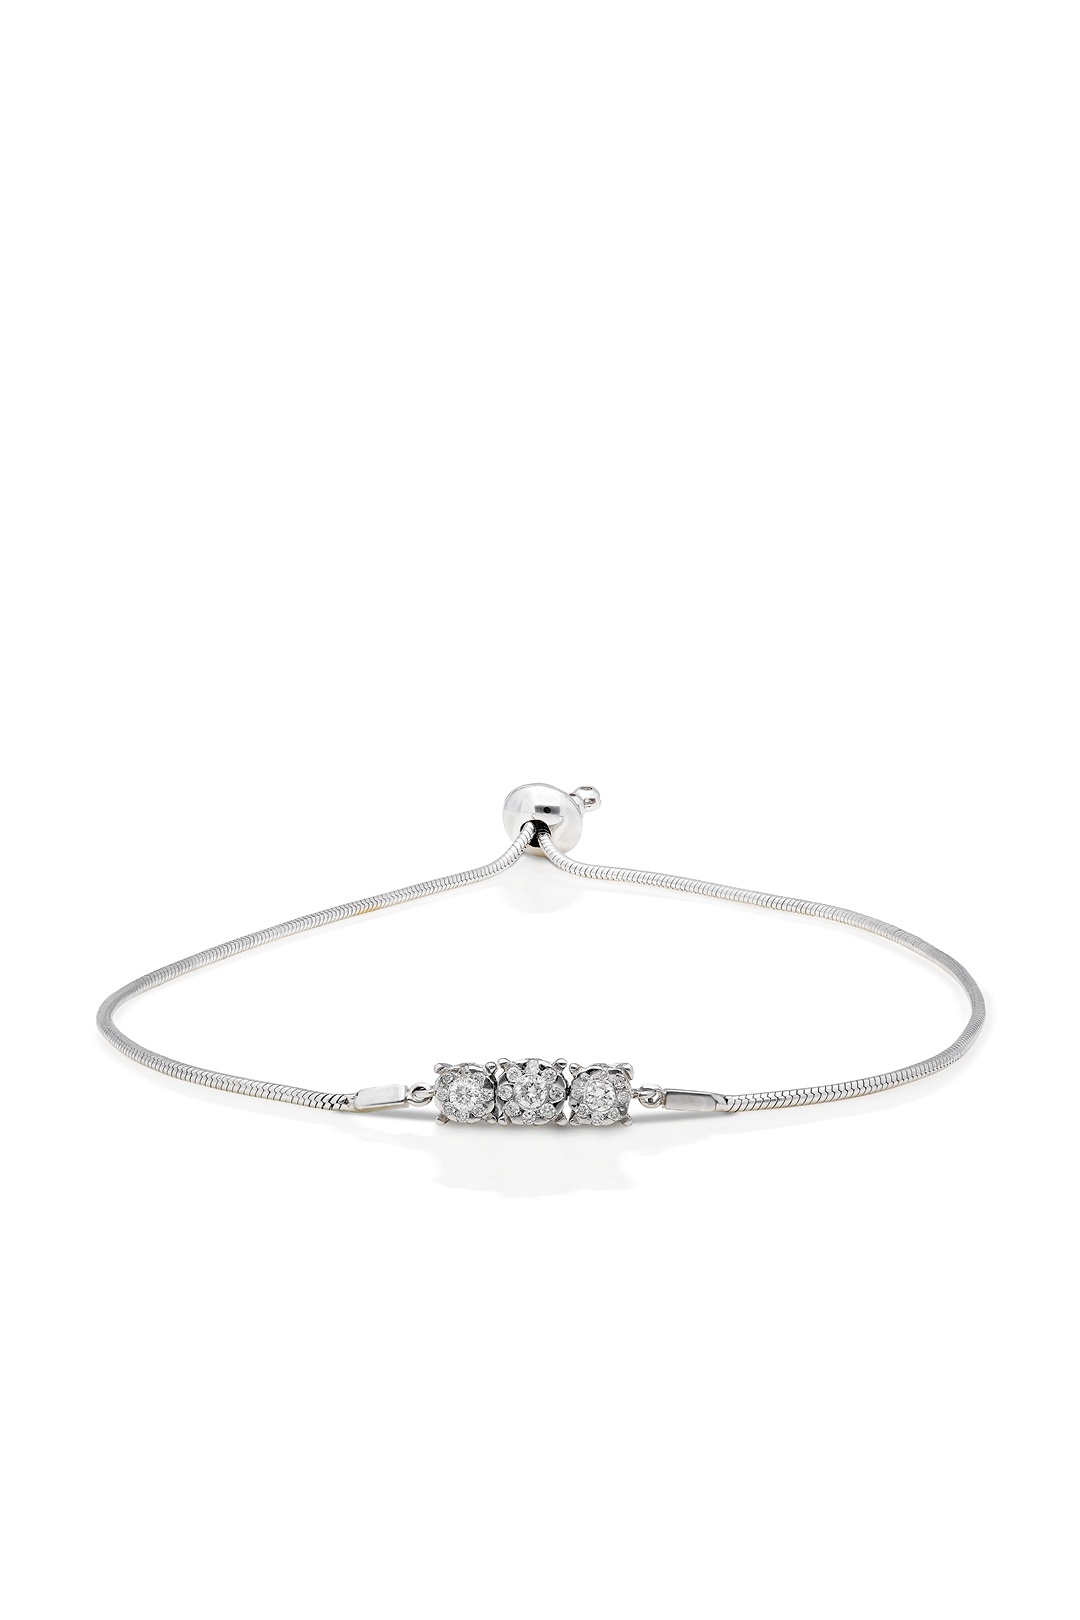 TRIPLE DIAMOND BRACELET